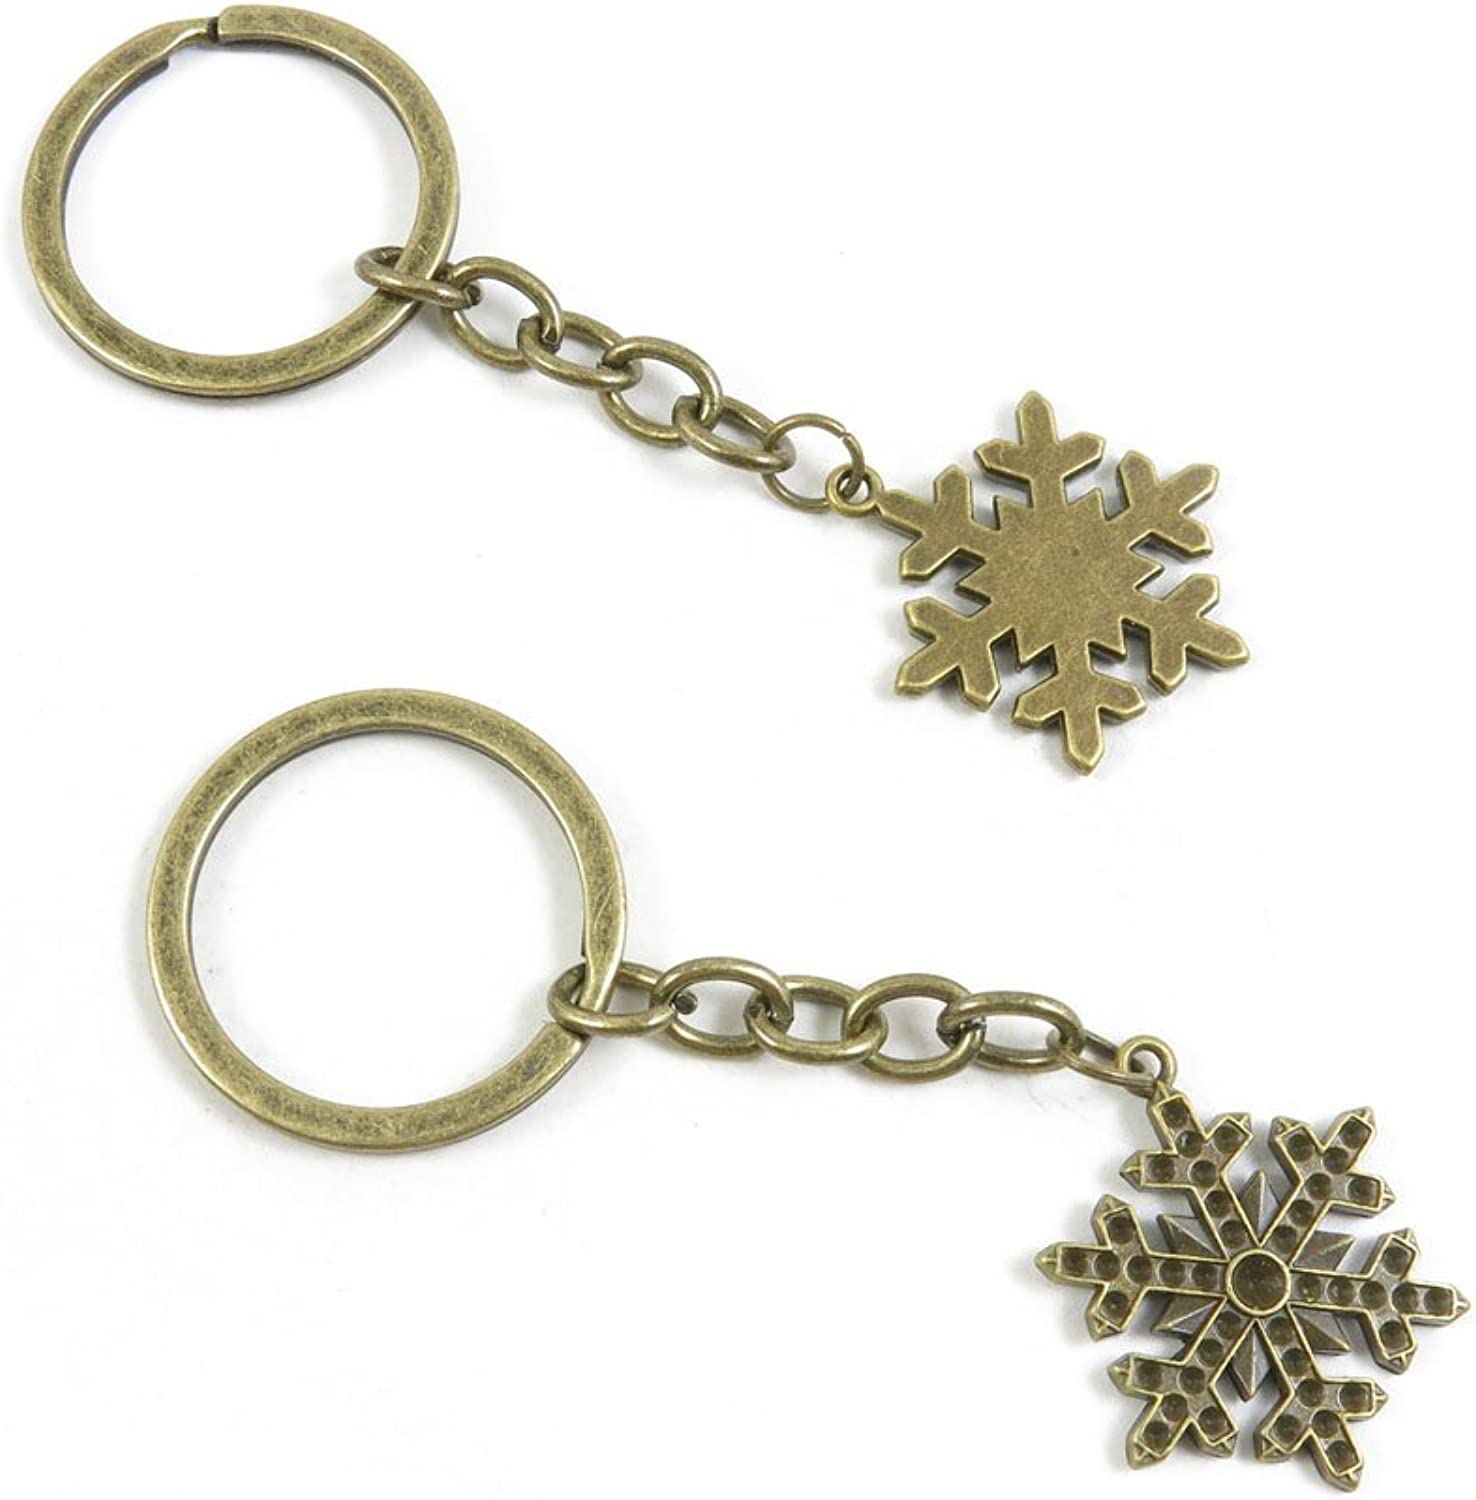 160 Pieces Fashion Jewelry Keyring Keychain Door Car Key Tag Ring Chain Supplier Supply Wholesale Bulk Lots C3BN0 Snow Flake Snowflake